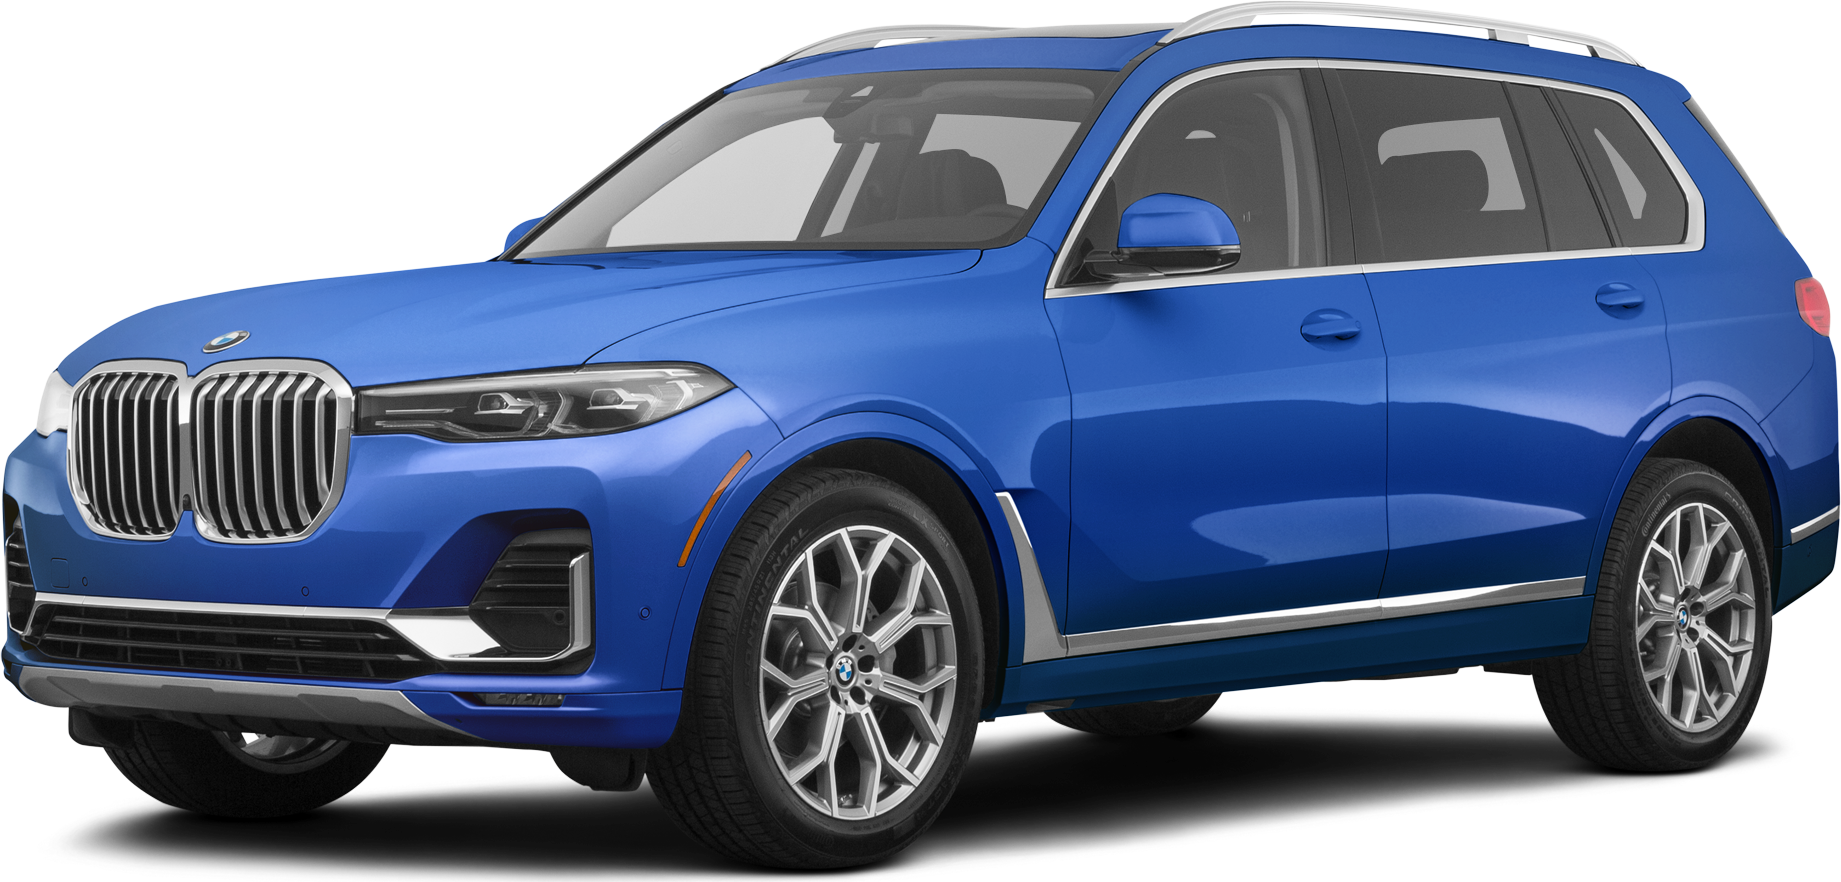 2021 Bmw X7 Prices Reviews Pictures Kelley Blue Book